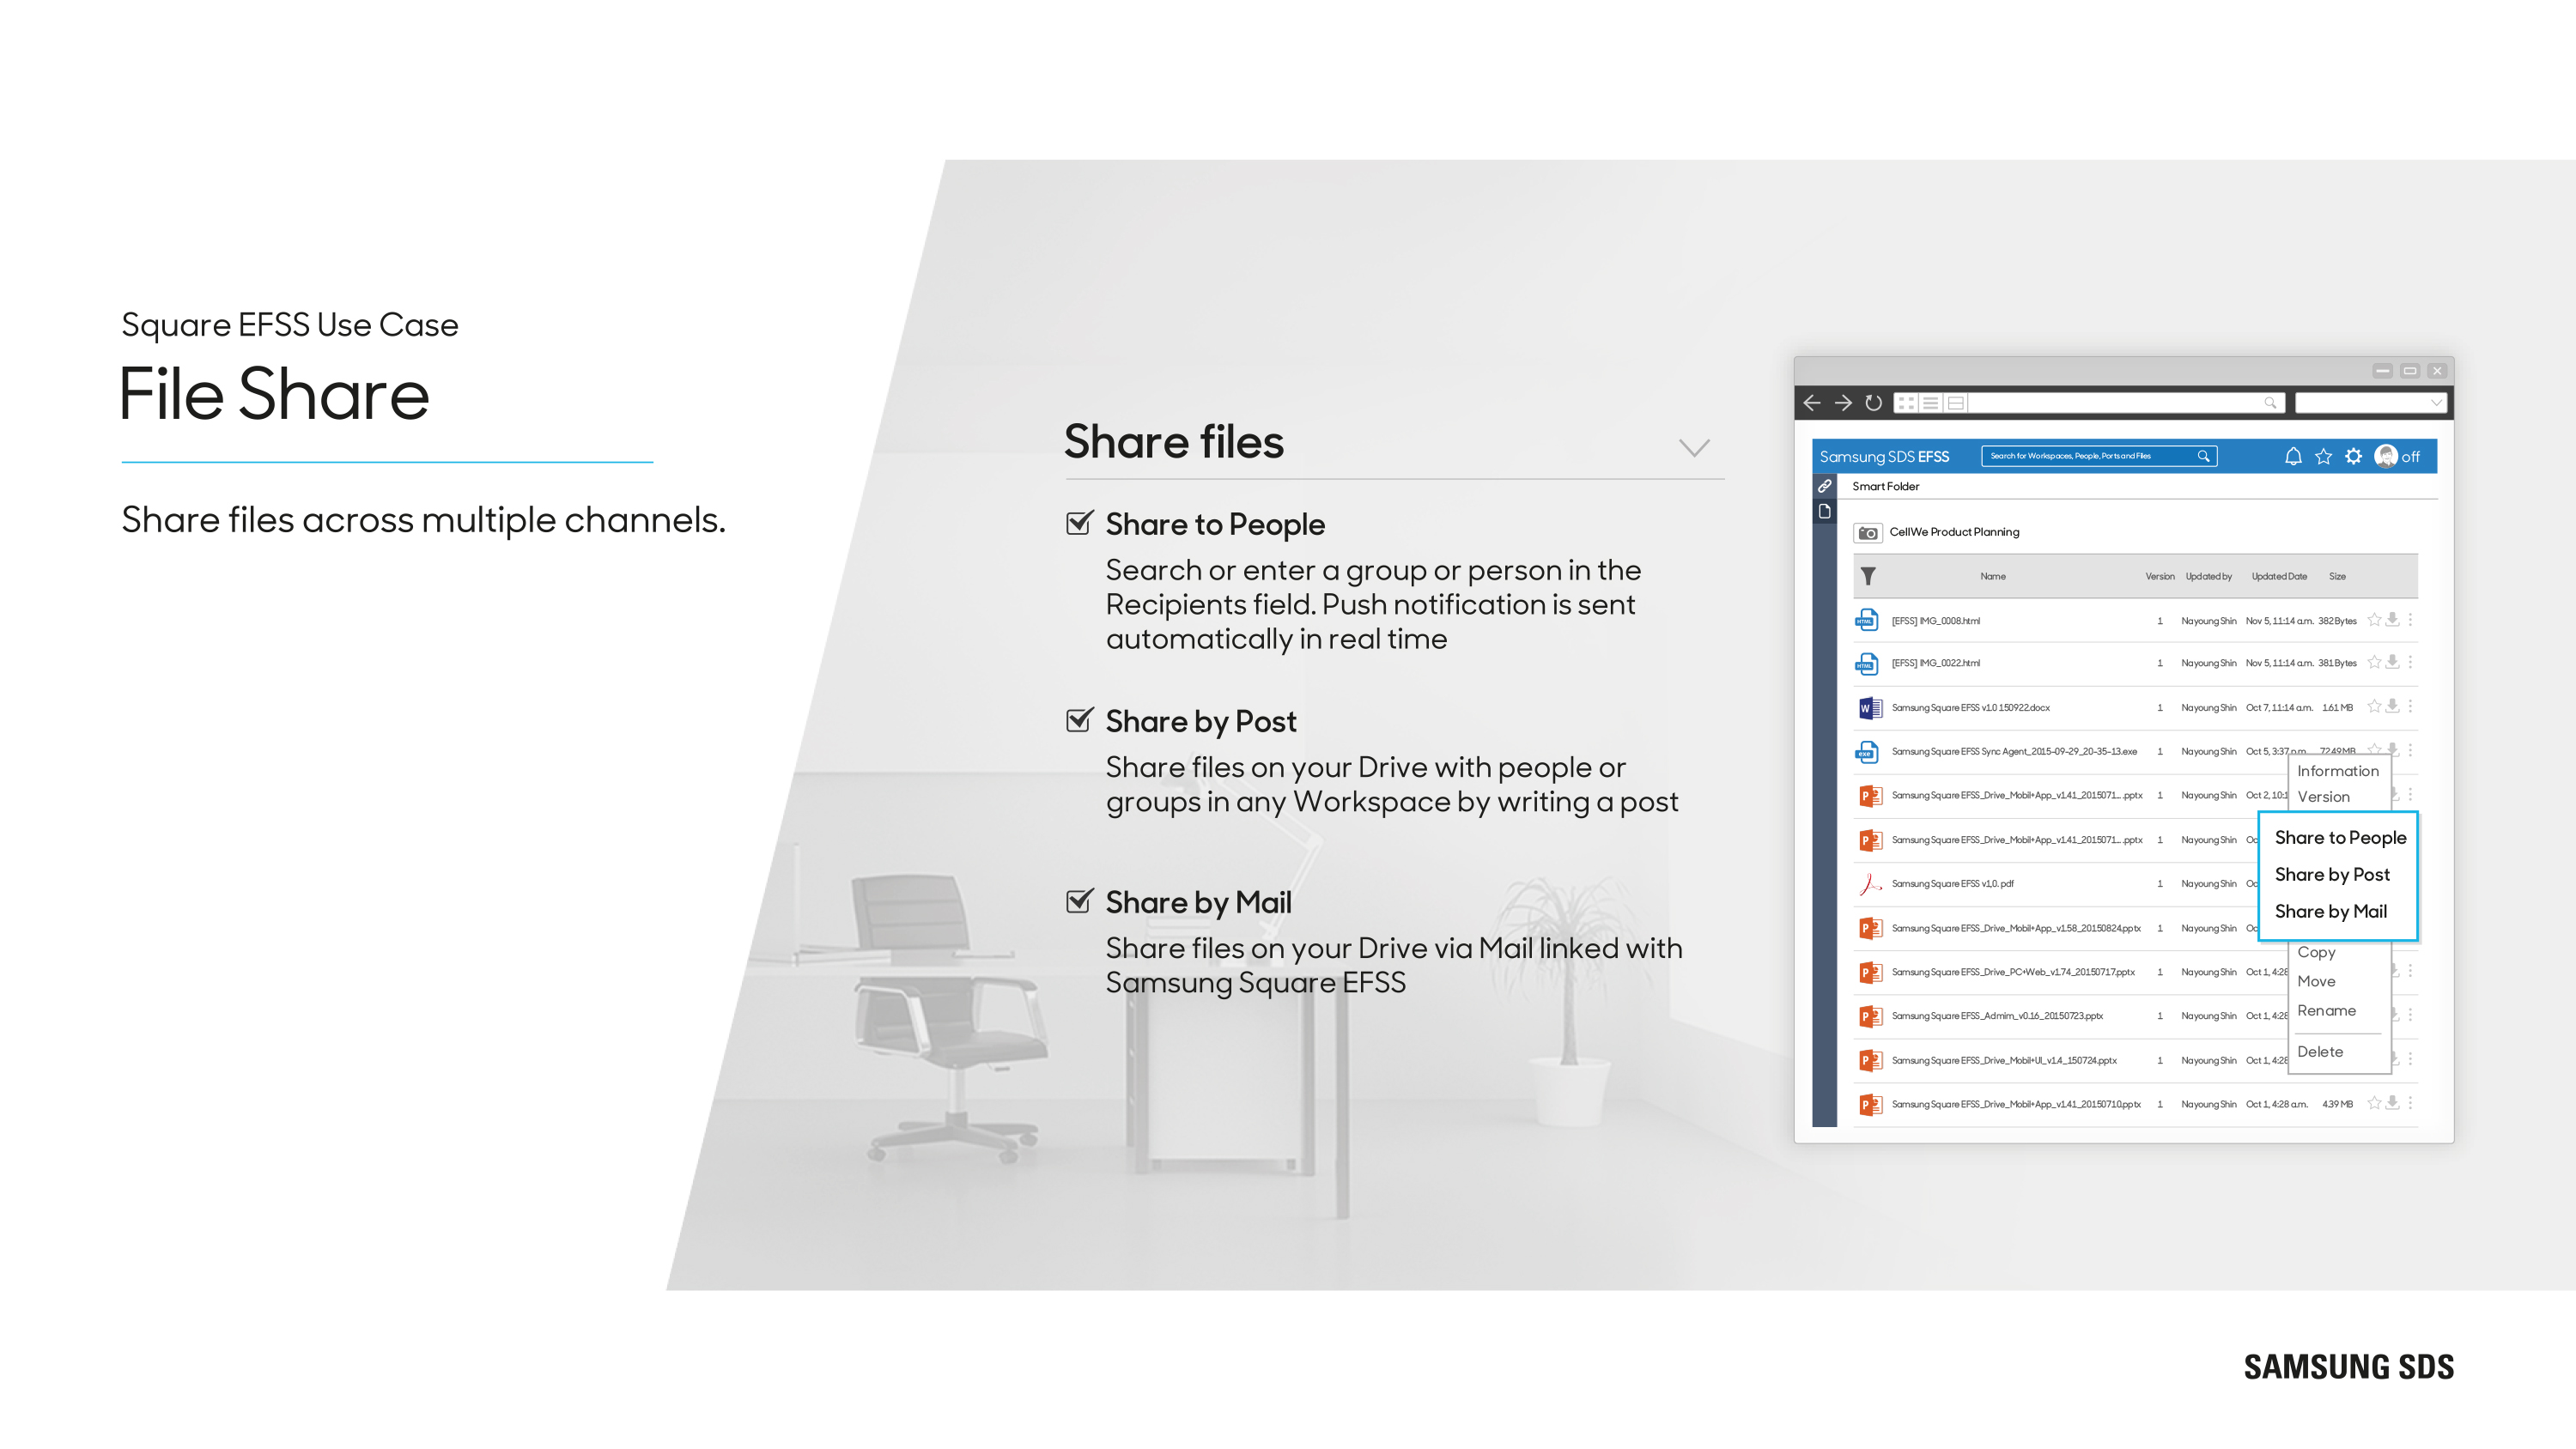 File Share